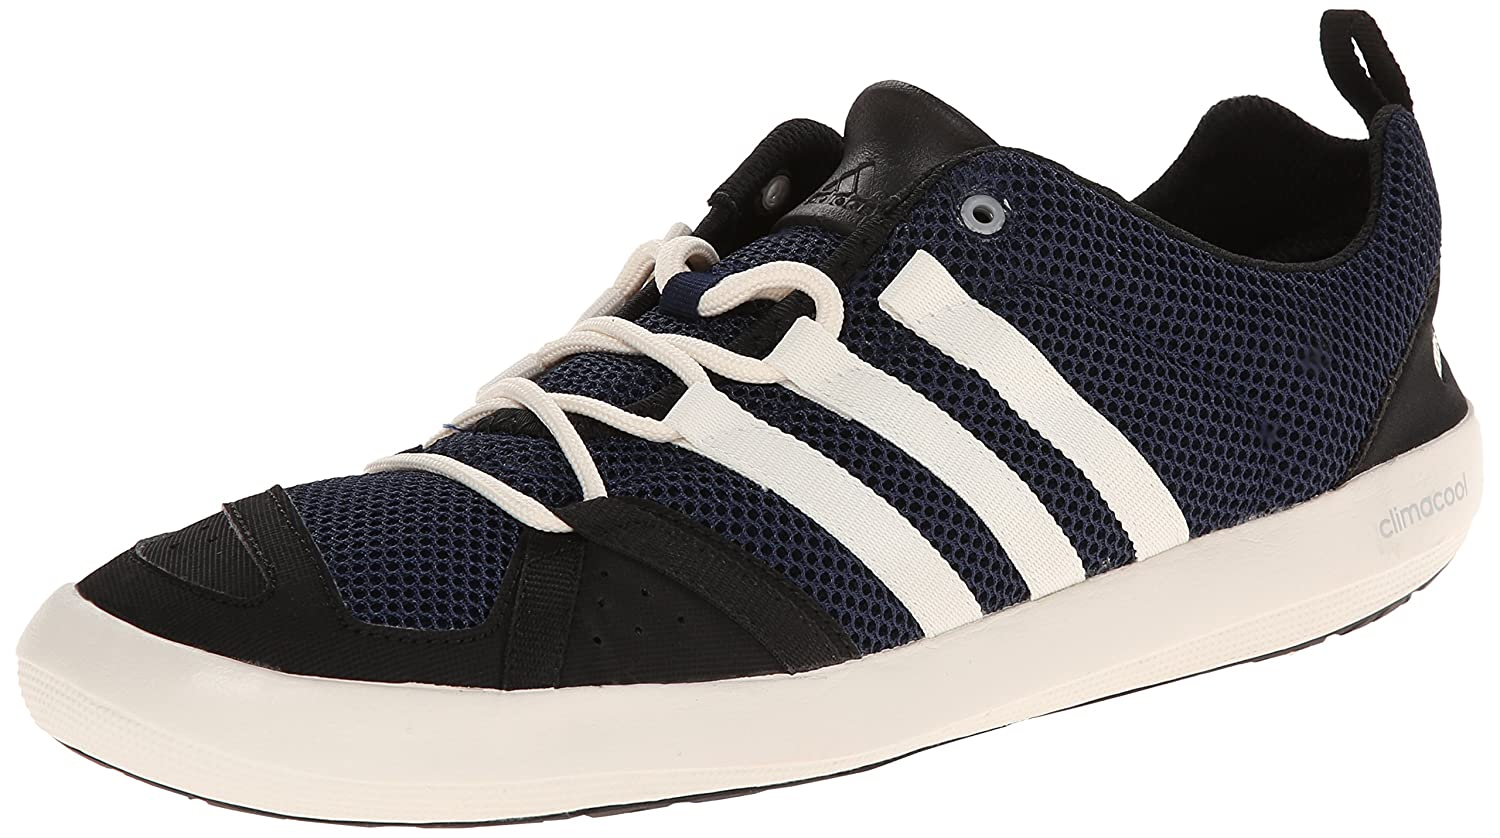 959a97d2674e35 Adidas outdoor Mens Climacool Boat Lace Water Shoes Colonel Navy ChalWhite  Black Reasonable Price